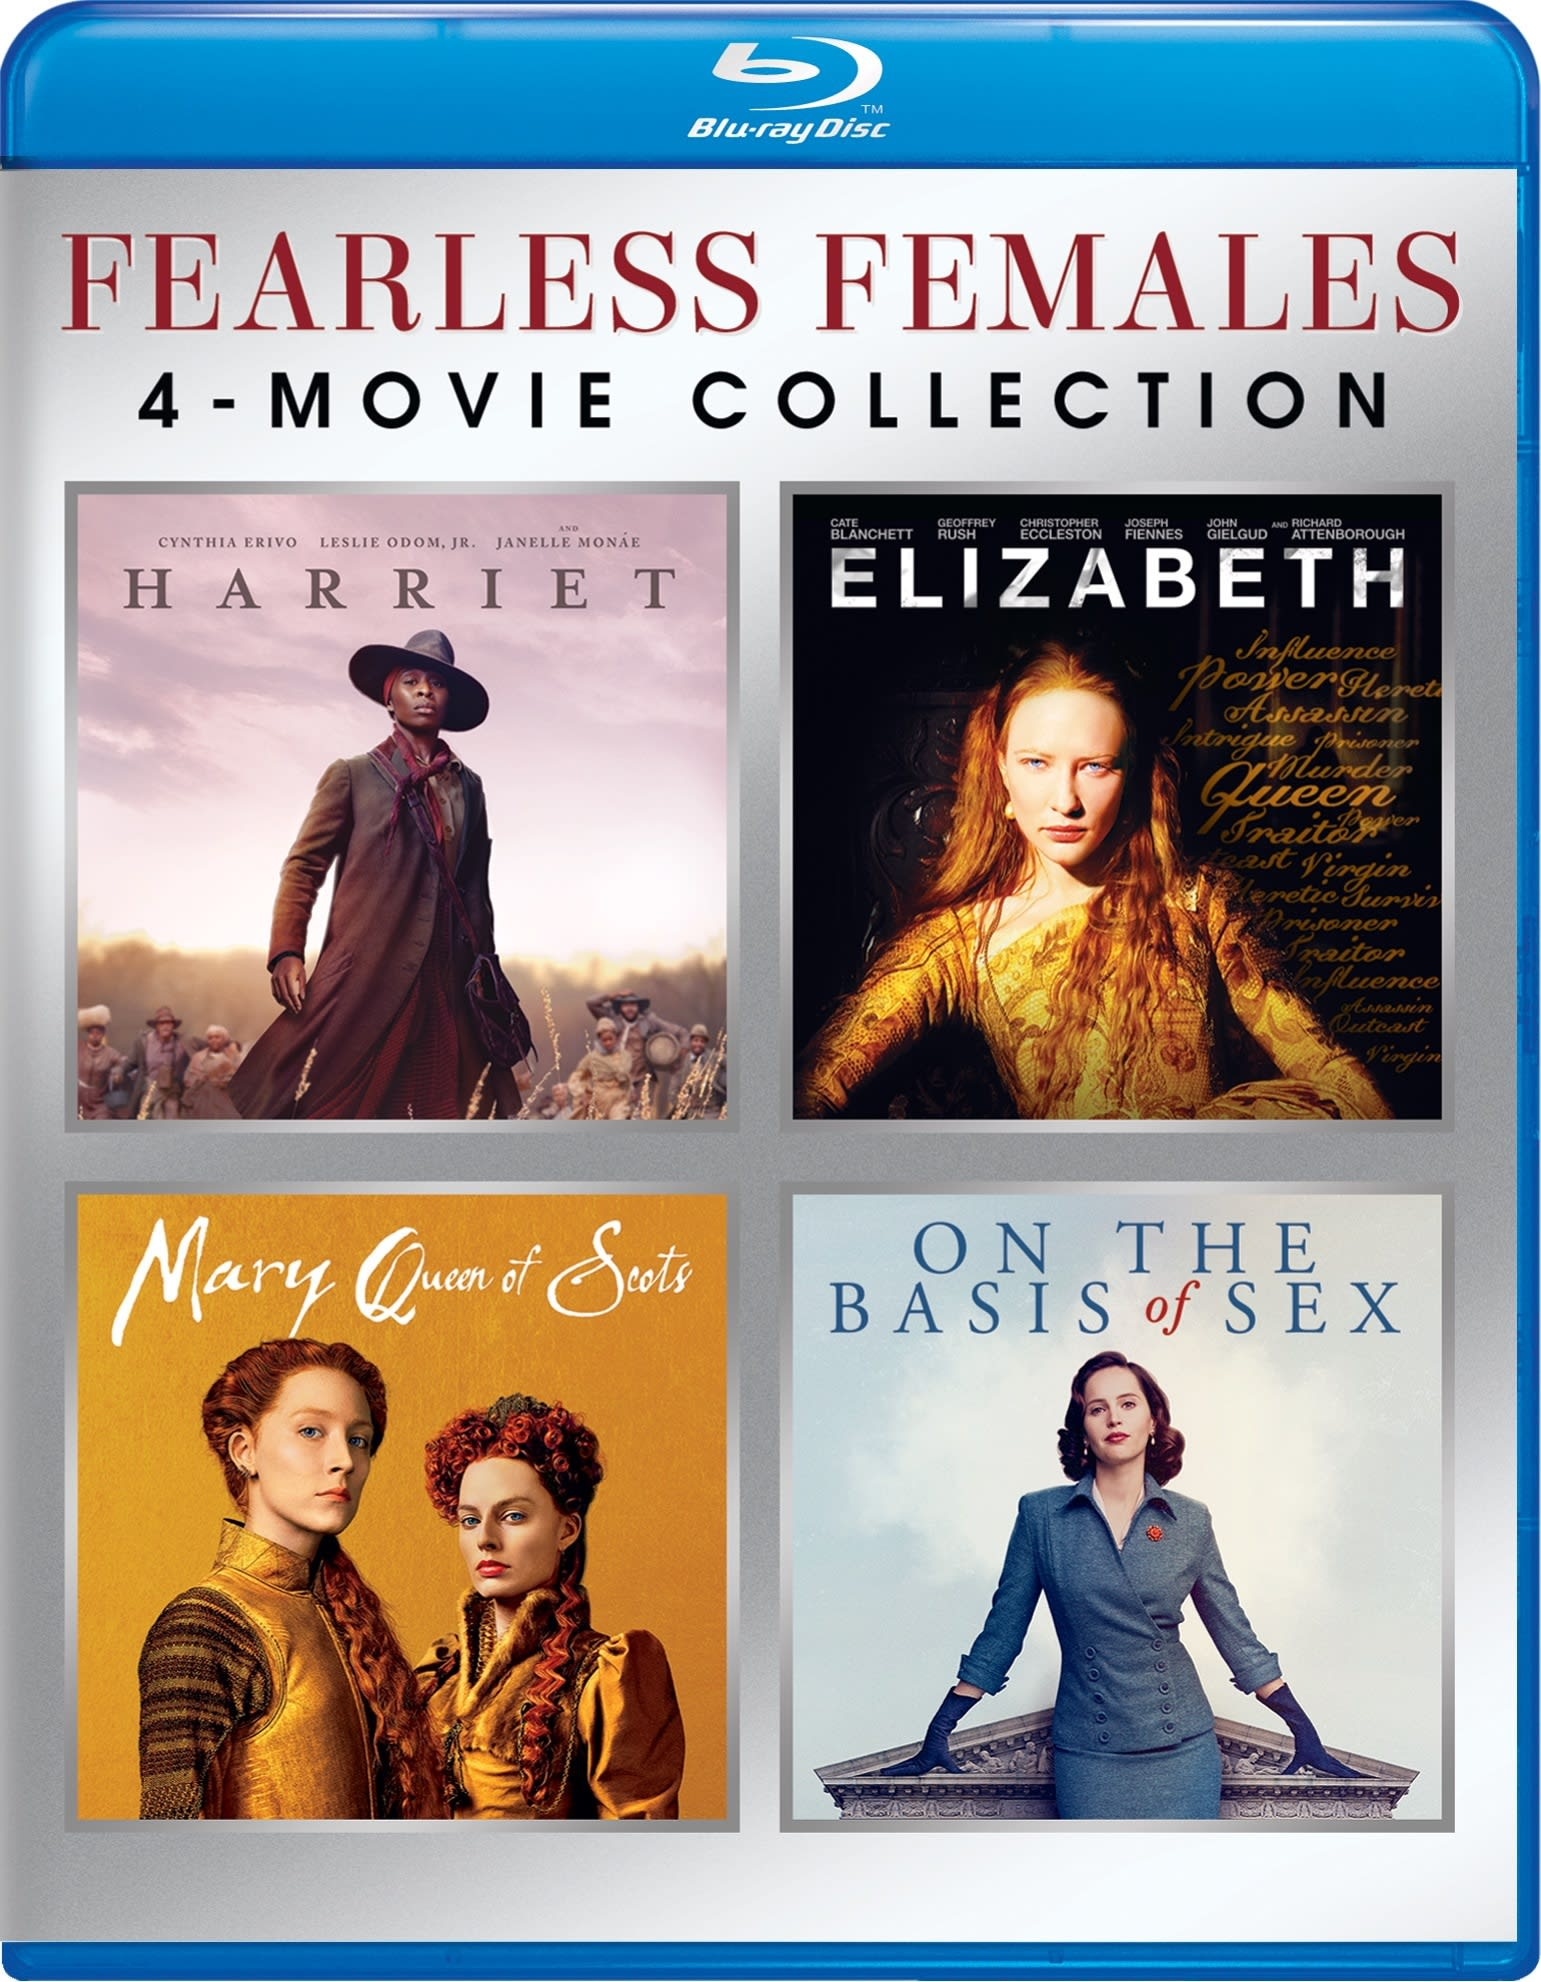 Fearless Females 4-Movie Collection (Harriet/Elizabeth/Mary Q [Blu-ray]